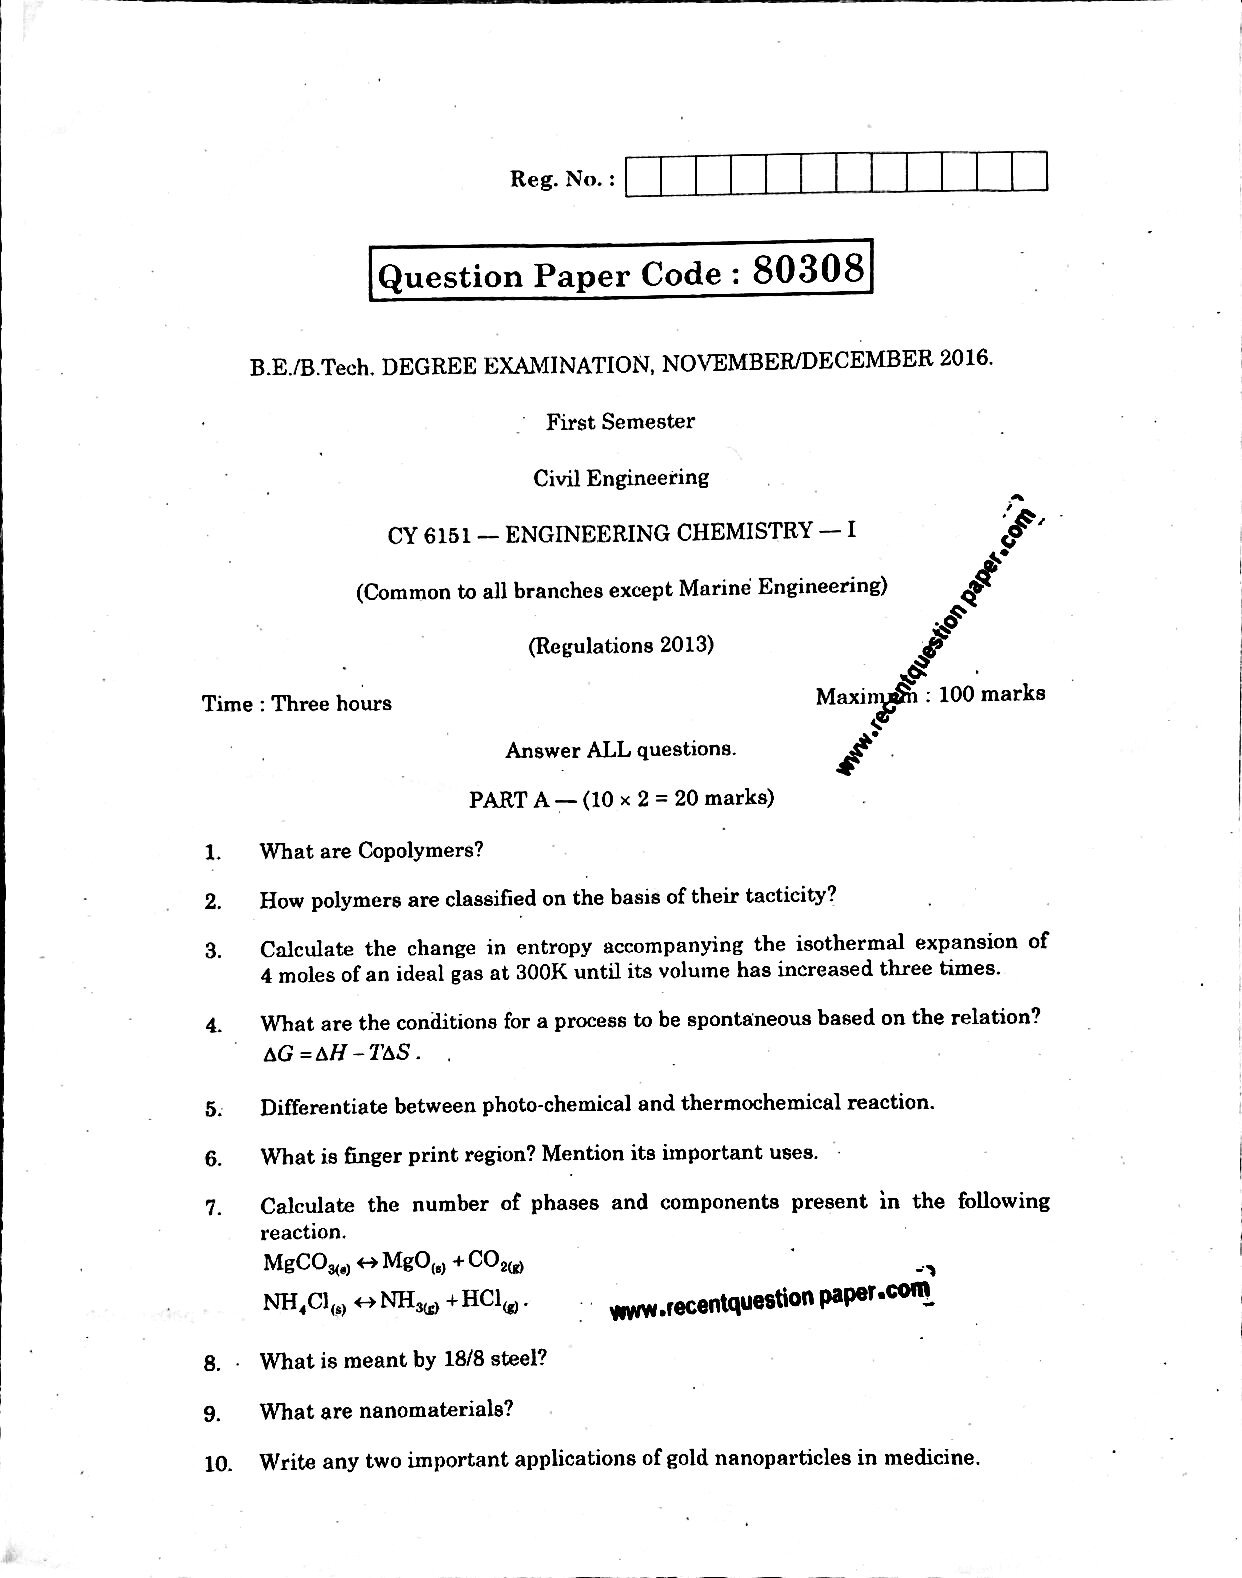 CY6151 ENGINEERING CHEMISTRY-I 0 - Recent Question Paper